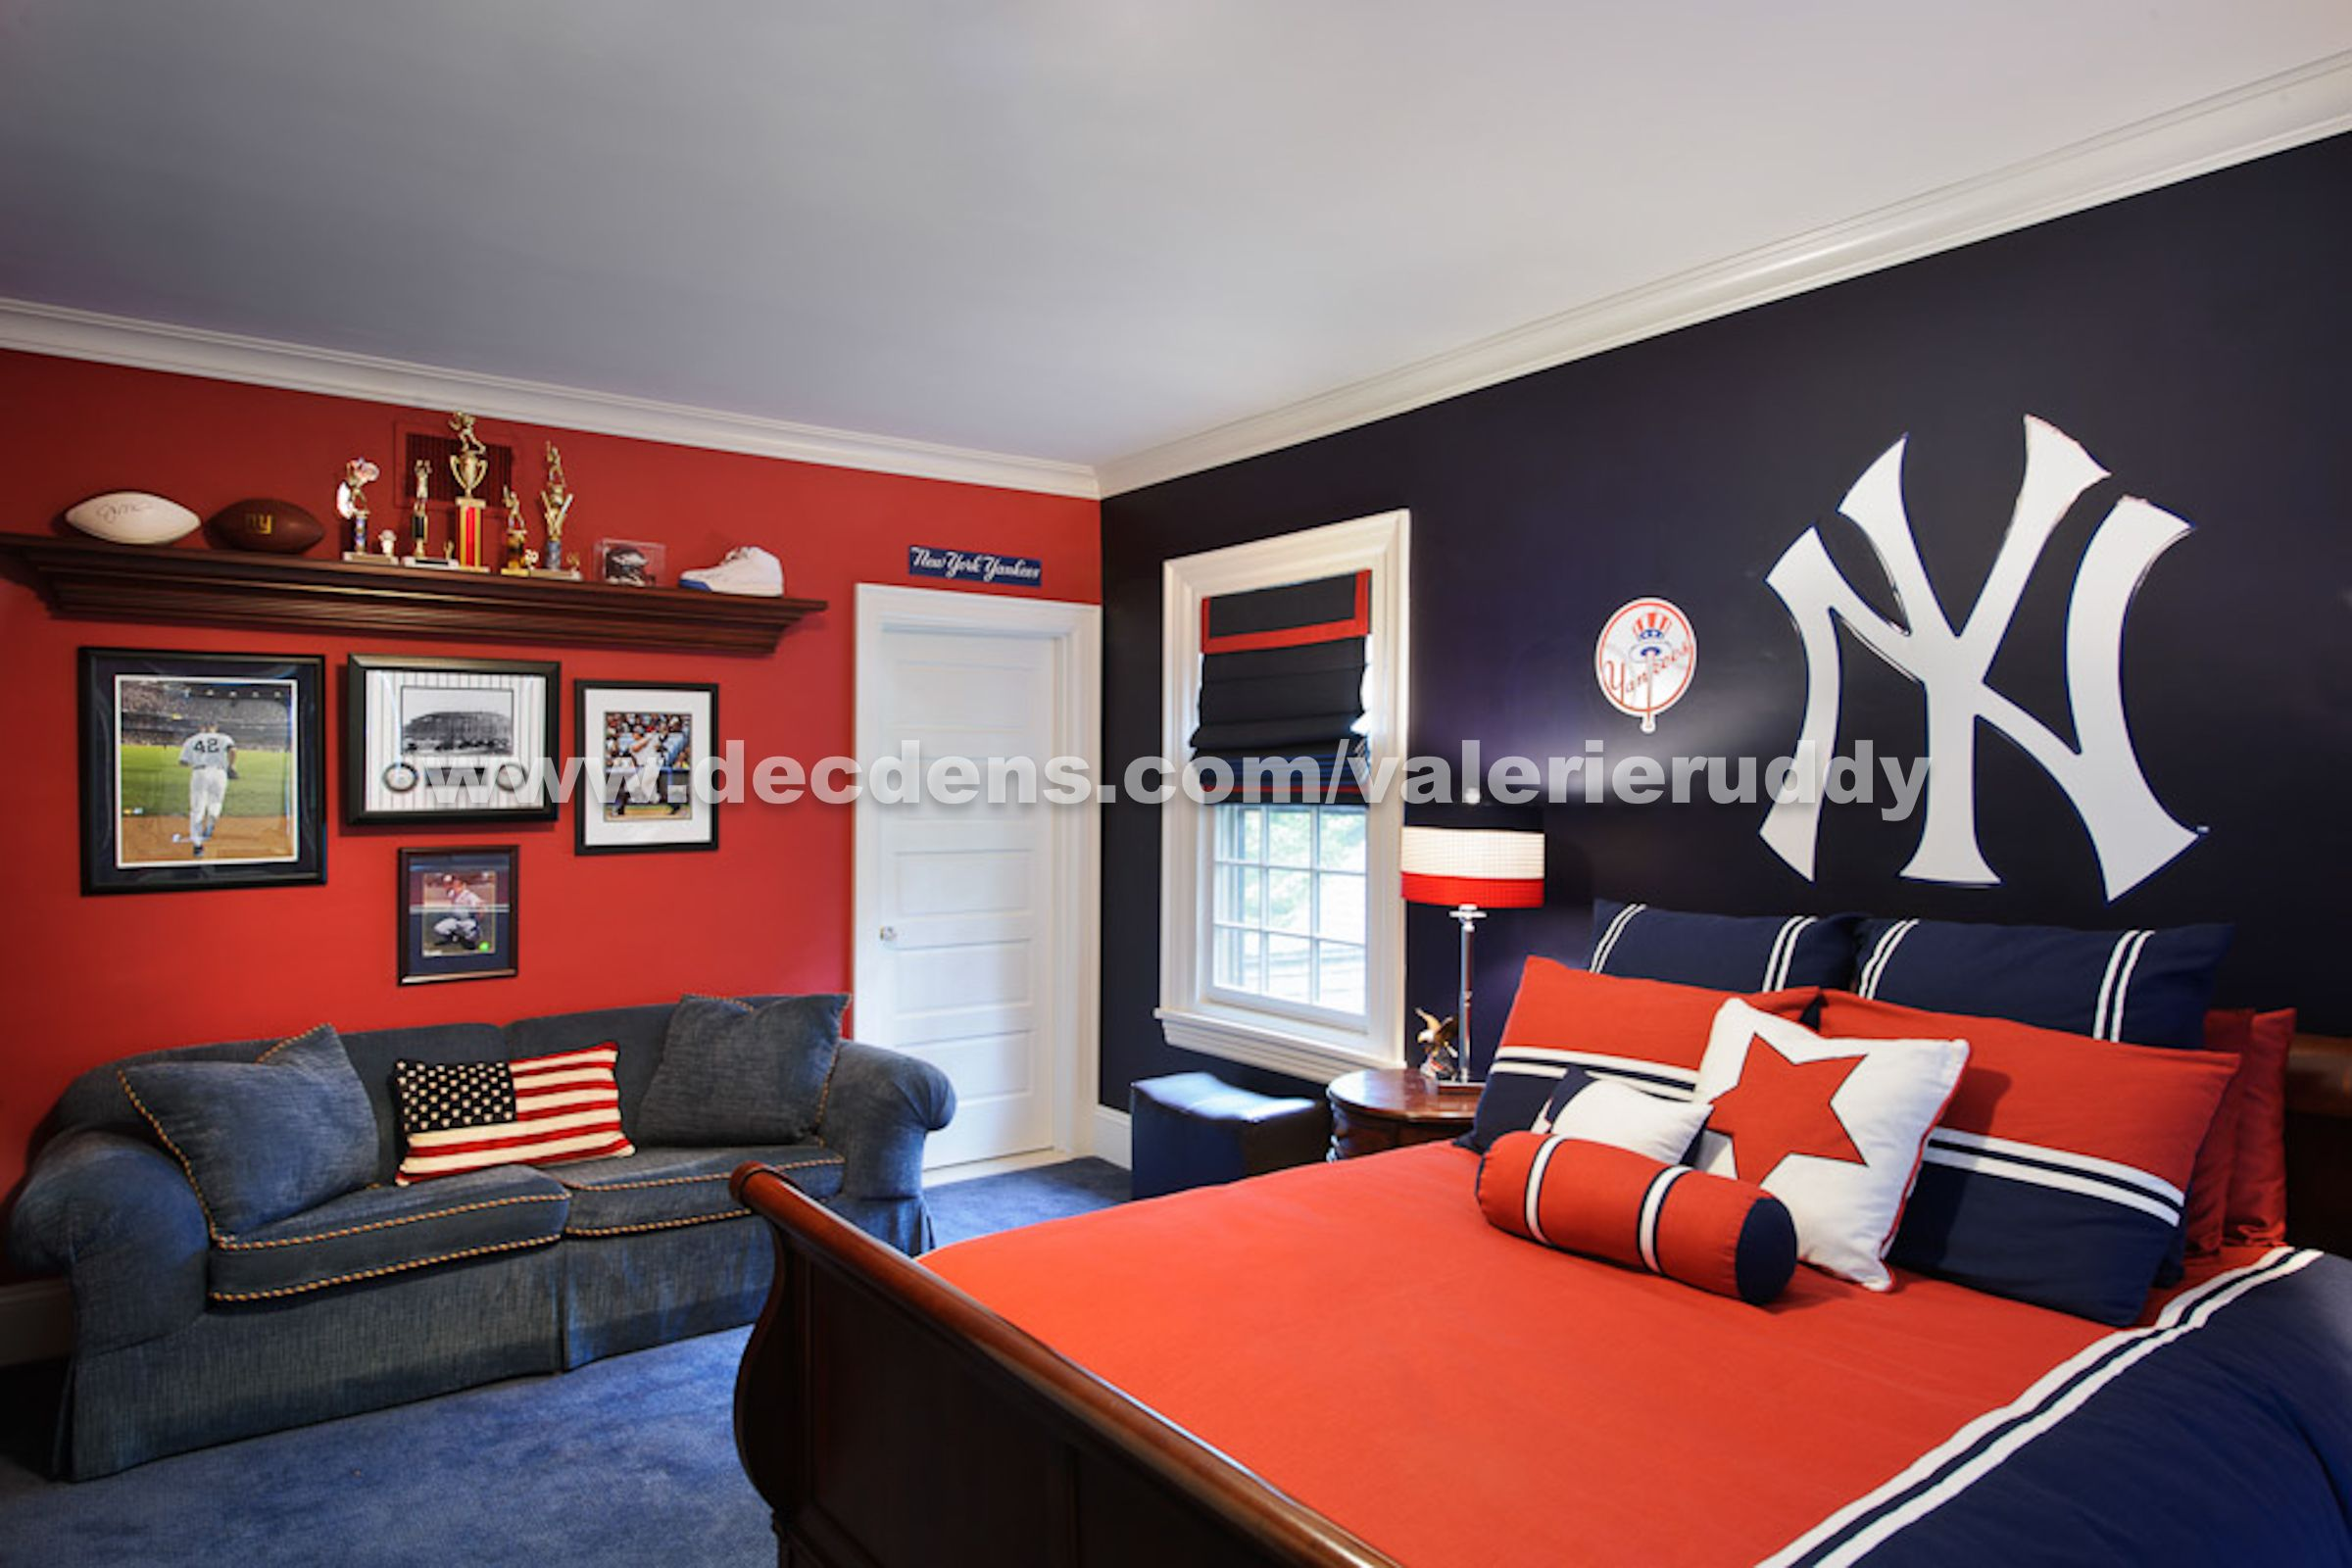 Teen boy bedroom design ideas pictures remodel and decor also yankees bedding from lauren   linens home decorating rh pinterest